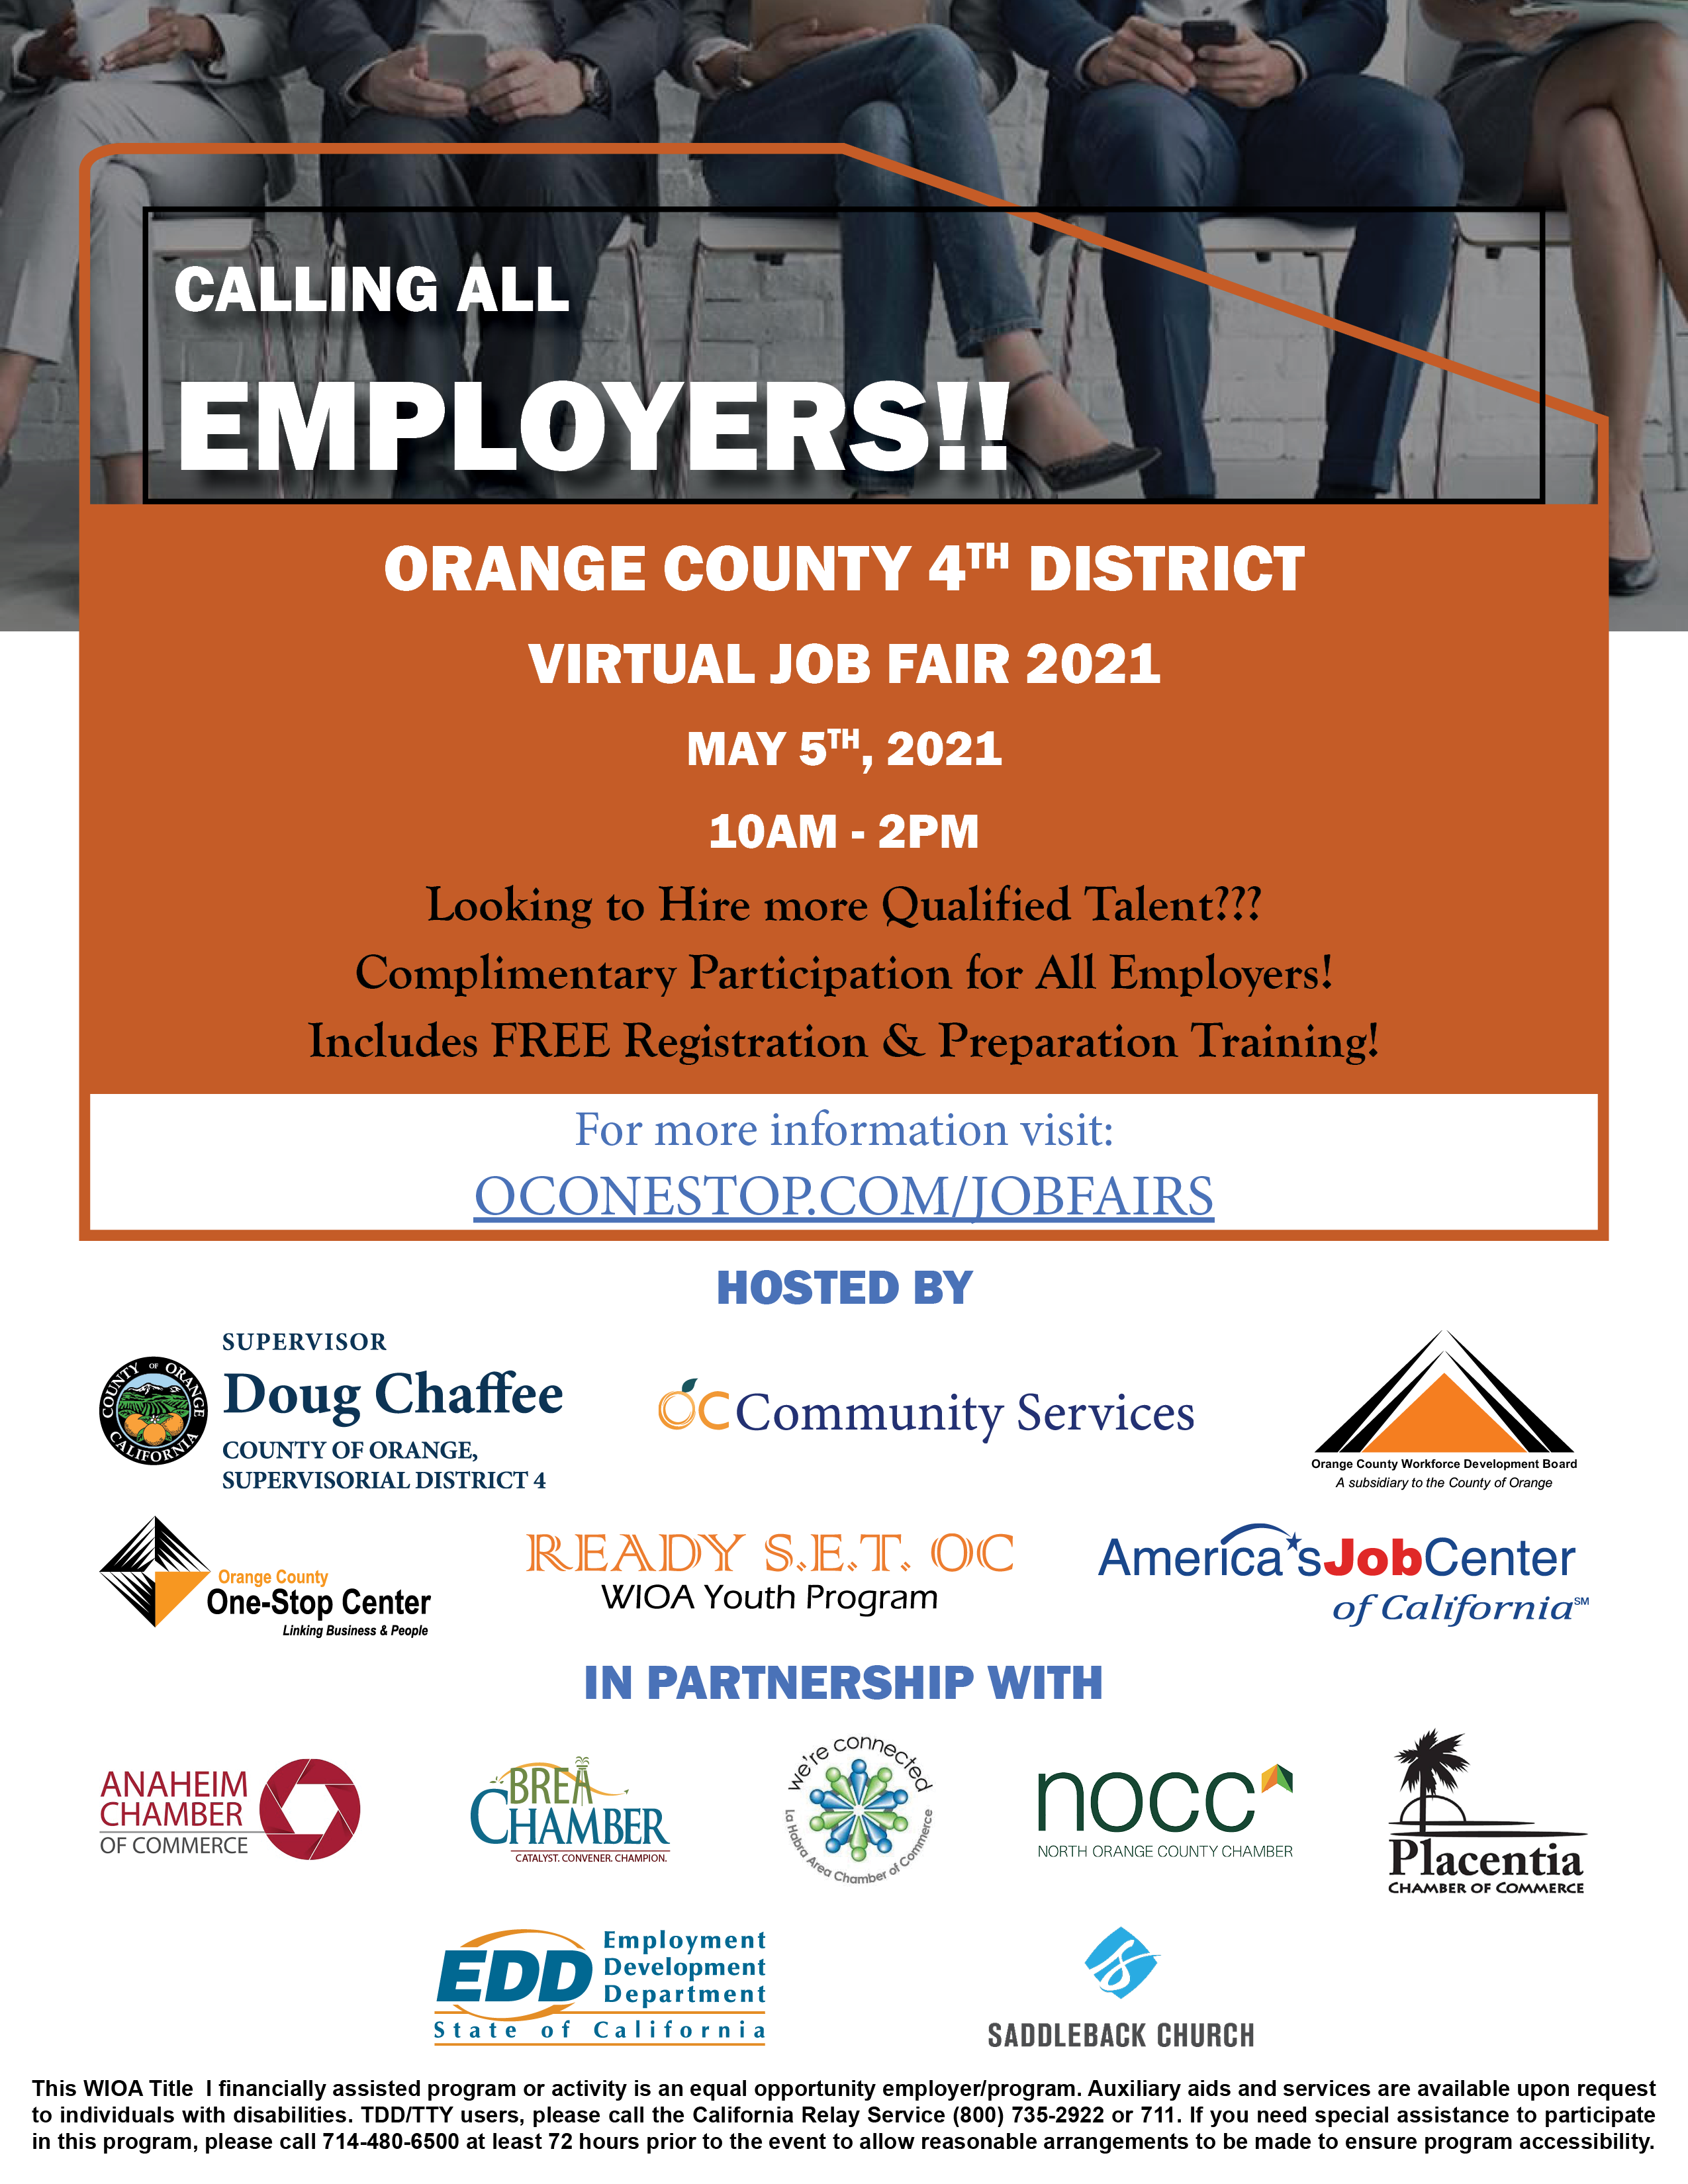 Attention Employers:  Meet Job Seekers at the Fourth District Virtual Job Fair on May 5, 2021 from 10 AM - 2 PM. Visit www.oconestop.com/jobfairs for free registration and preparation training.